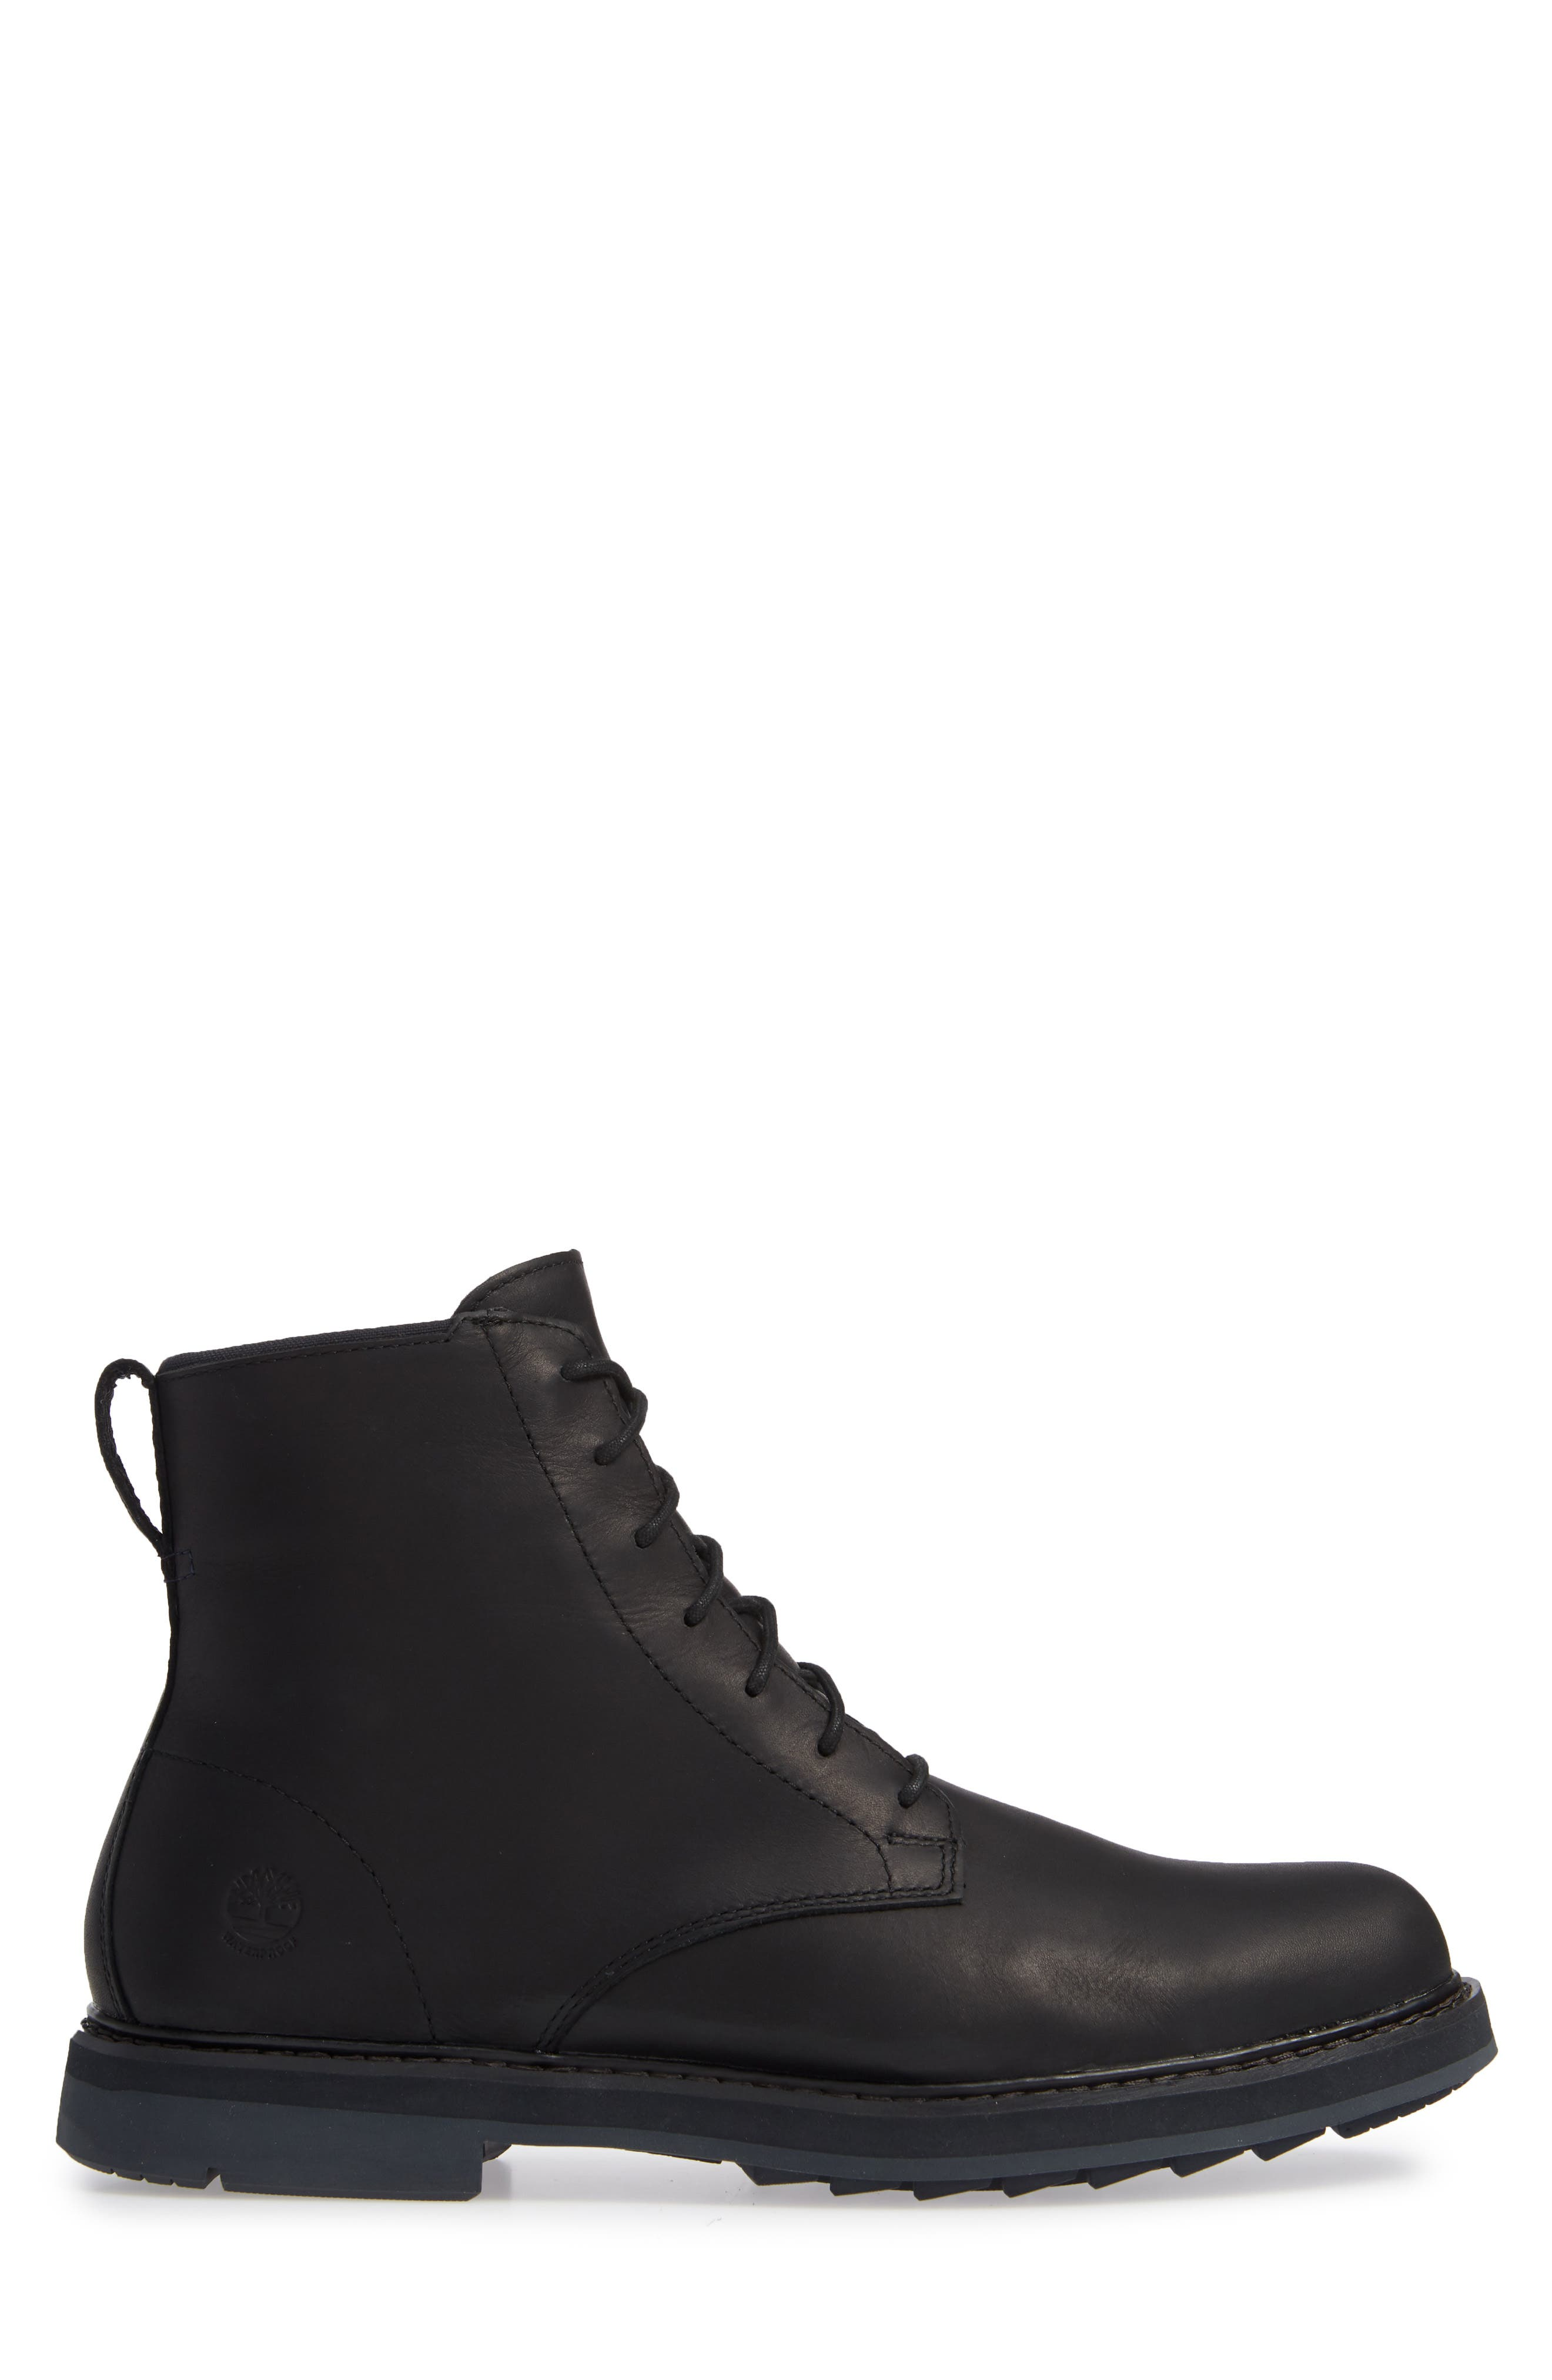 Squall Canyon Waterproof Plain Toe Boot,                             Alternate thumbnail 3, color,                             BLACK LEATHER